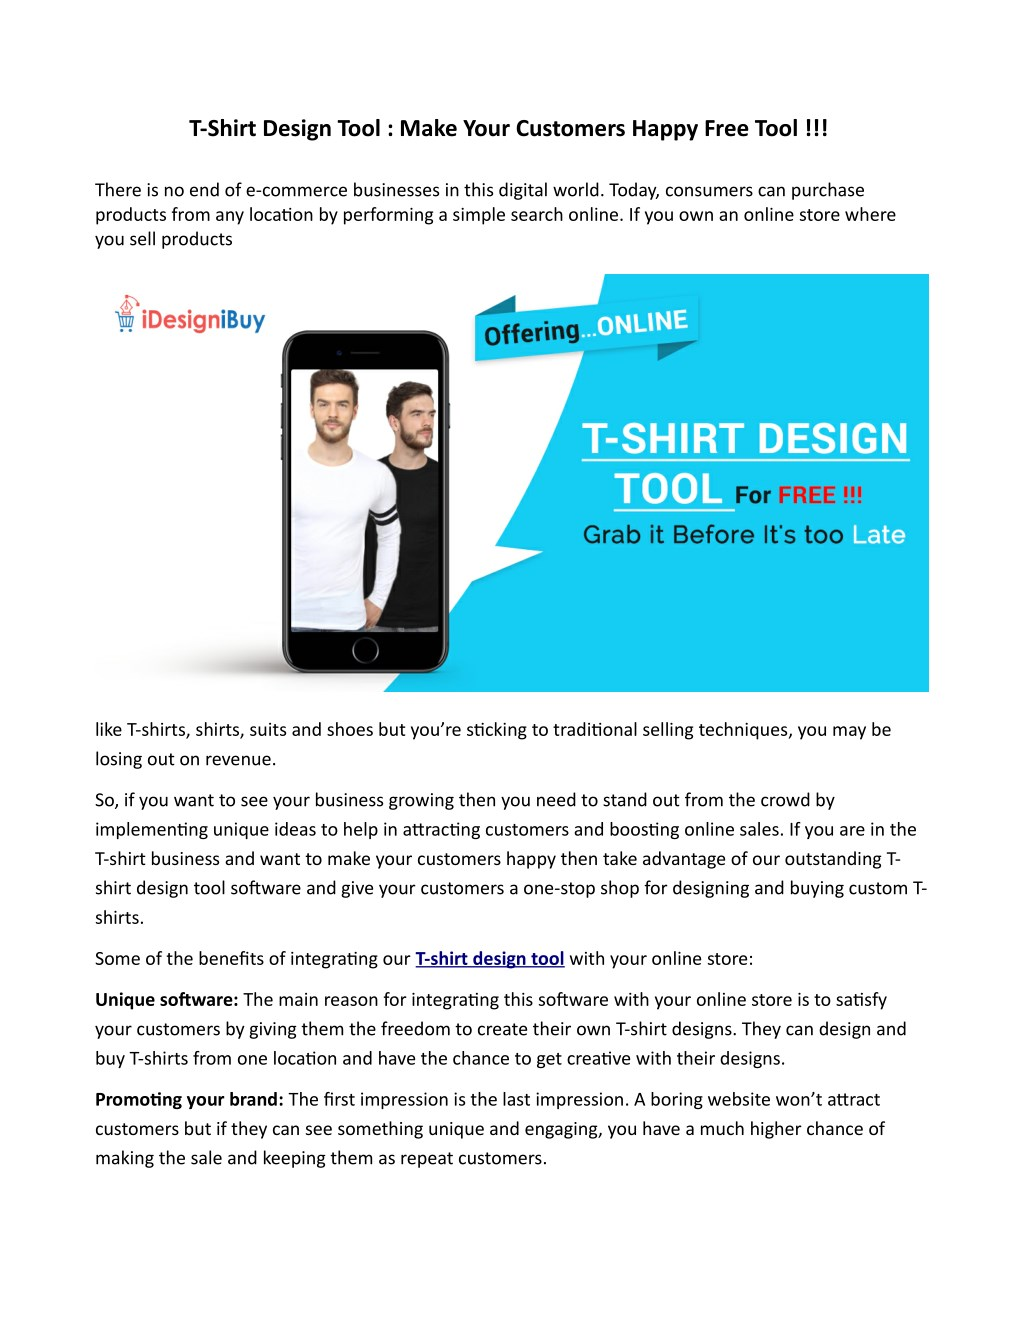 Ppt T Shirt Design Tool Make Your Customers Happy Free Tool Powerpoint Presentation Id 7728000